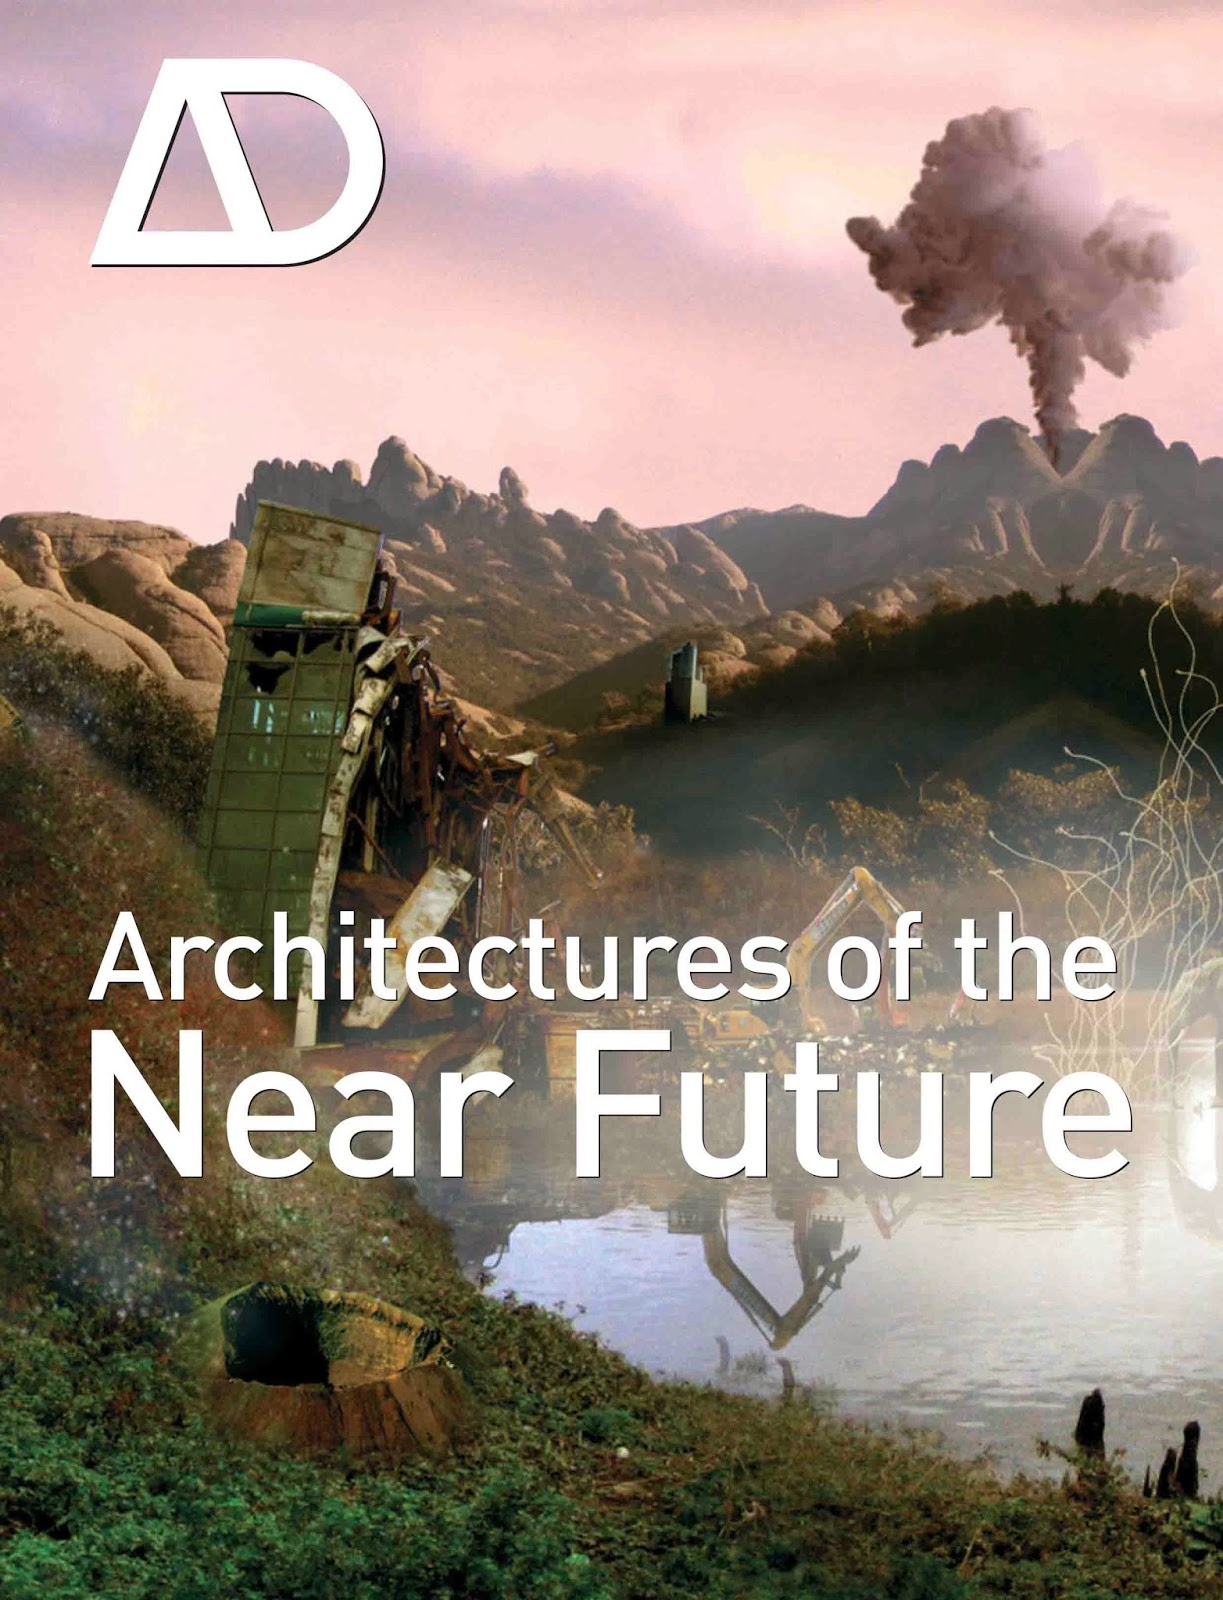 Art & Architecture Library: AD - Architectures of the Near Future